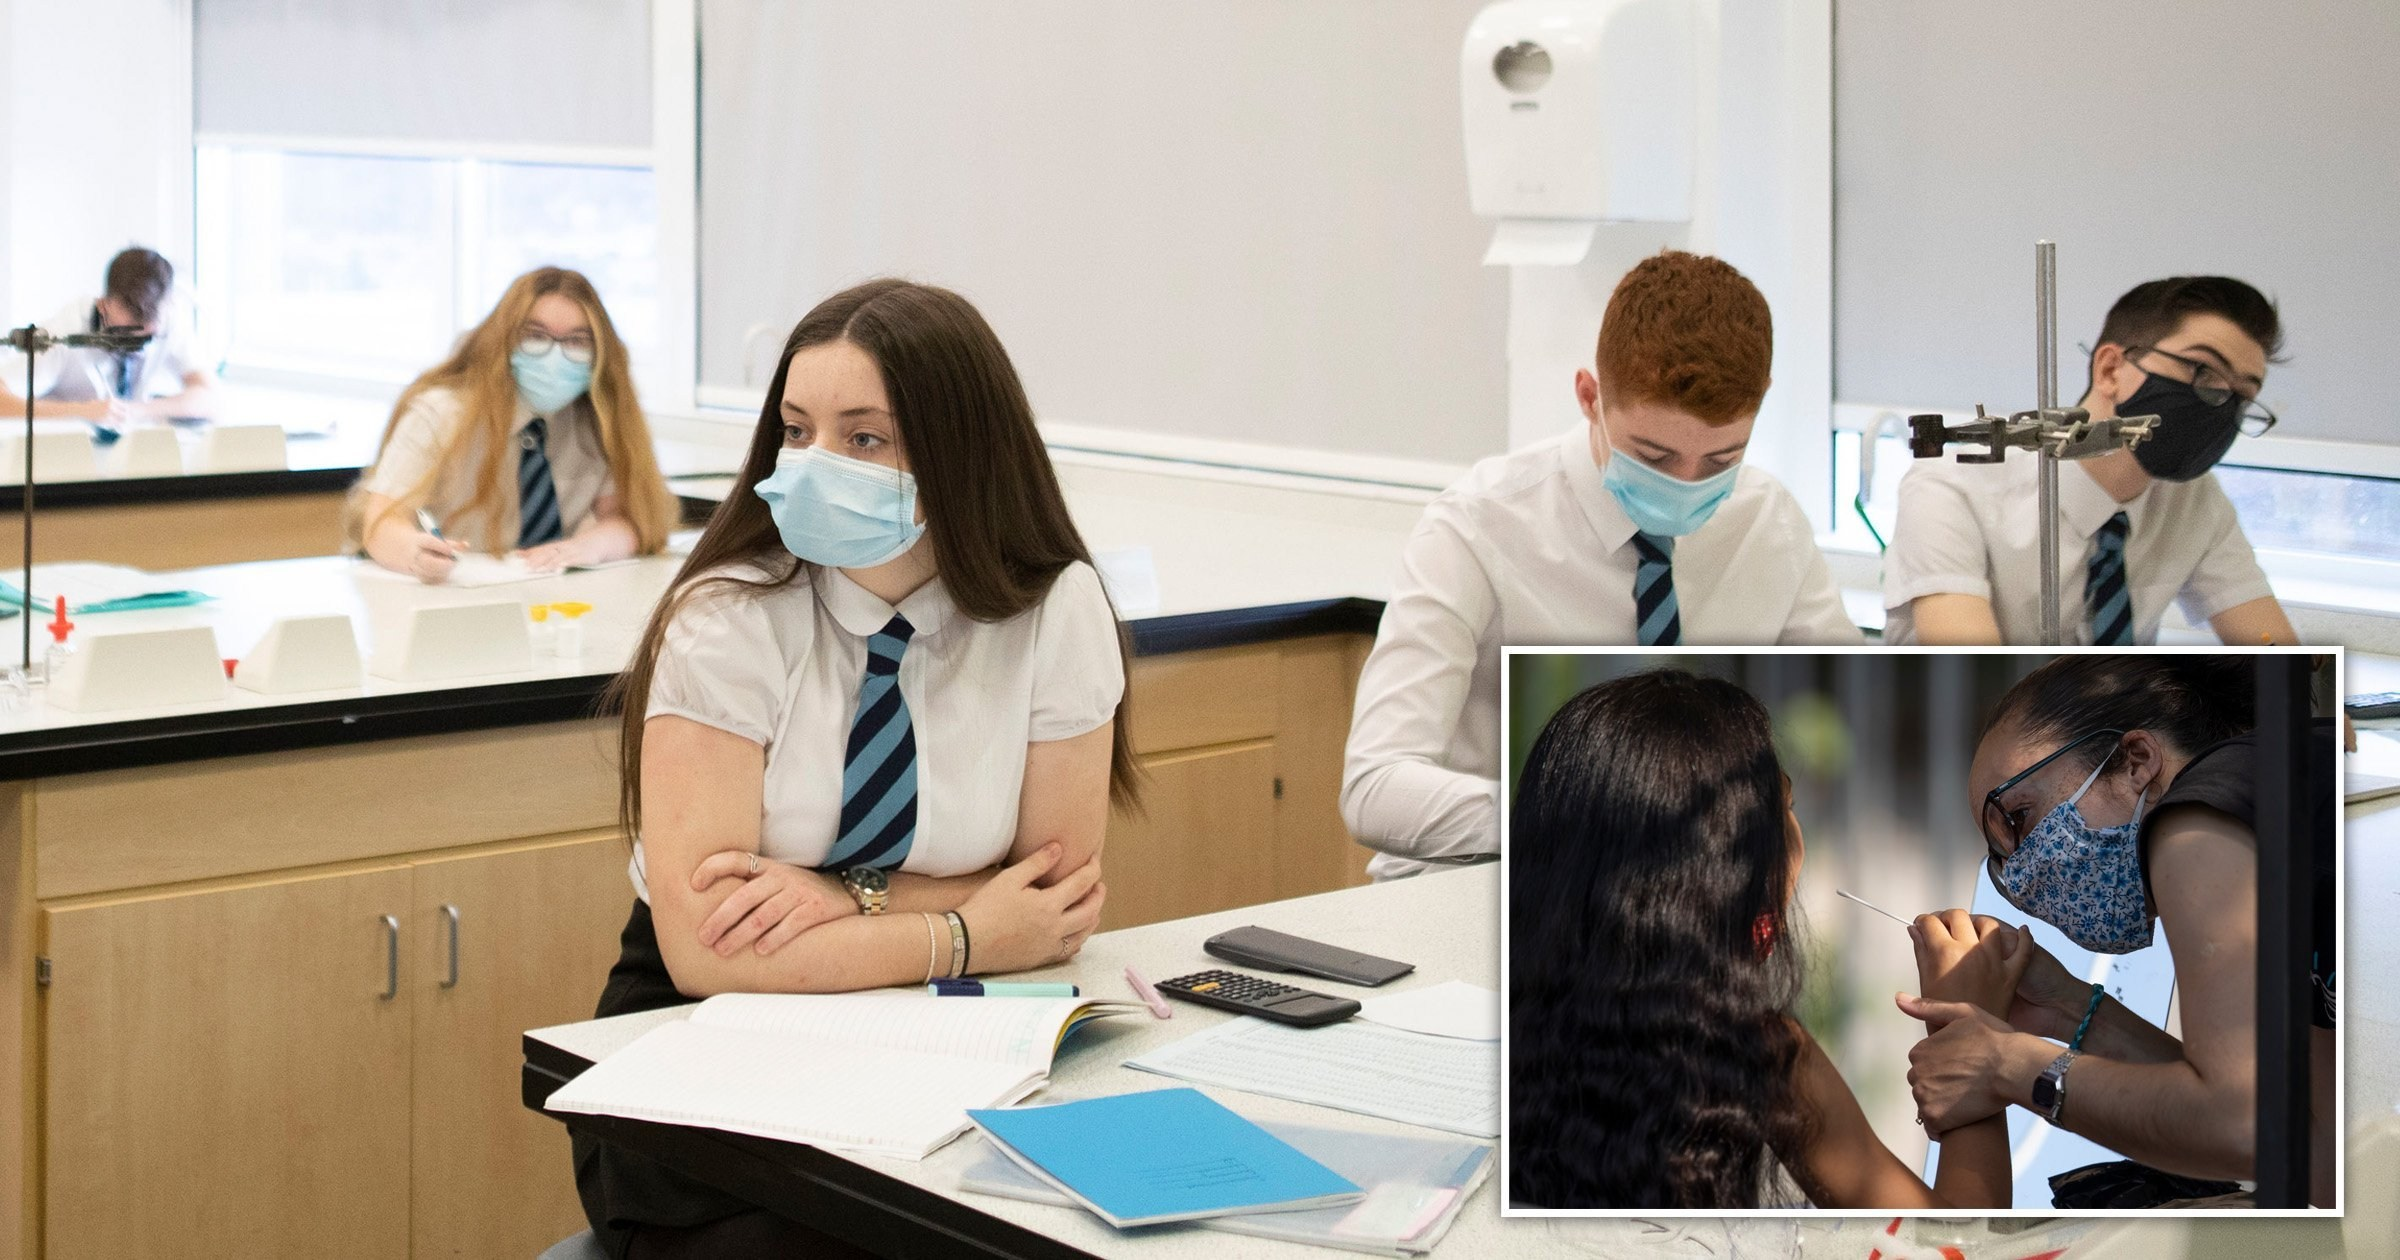 Secondary school pupils in worst hit areas to be tested for Covid